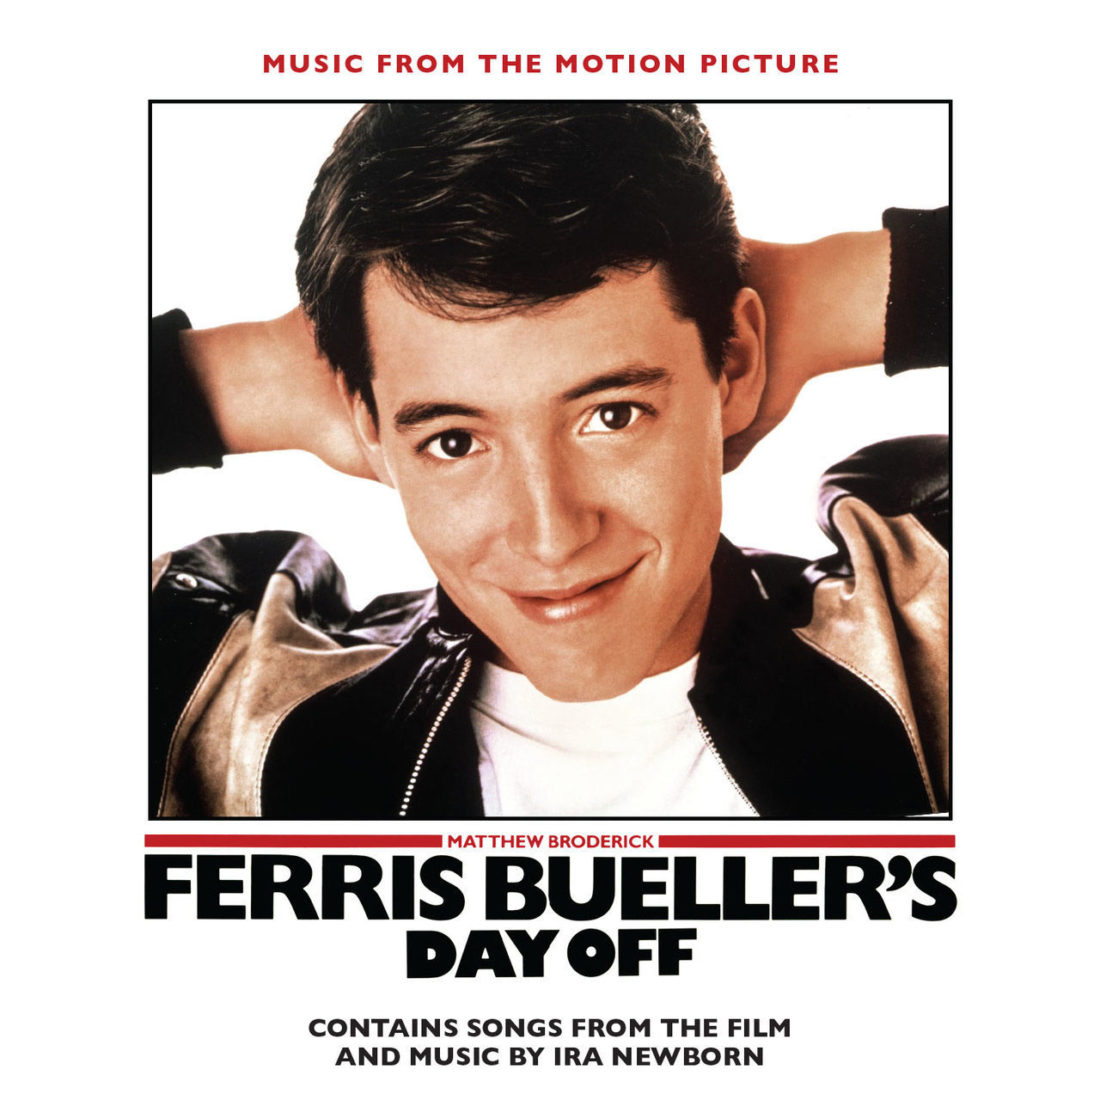 Ferris Bueller's Day Off Motion Picture Soundtrack Limited Edition